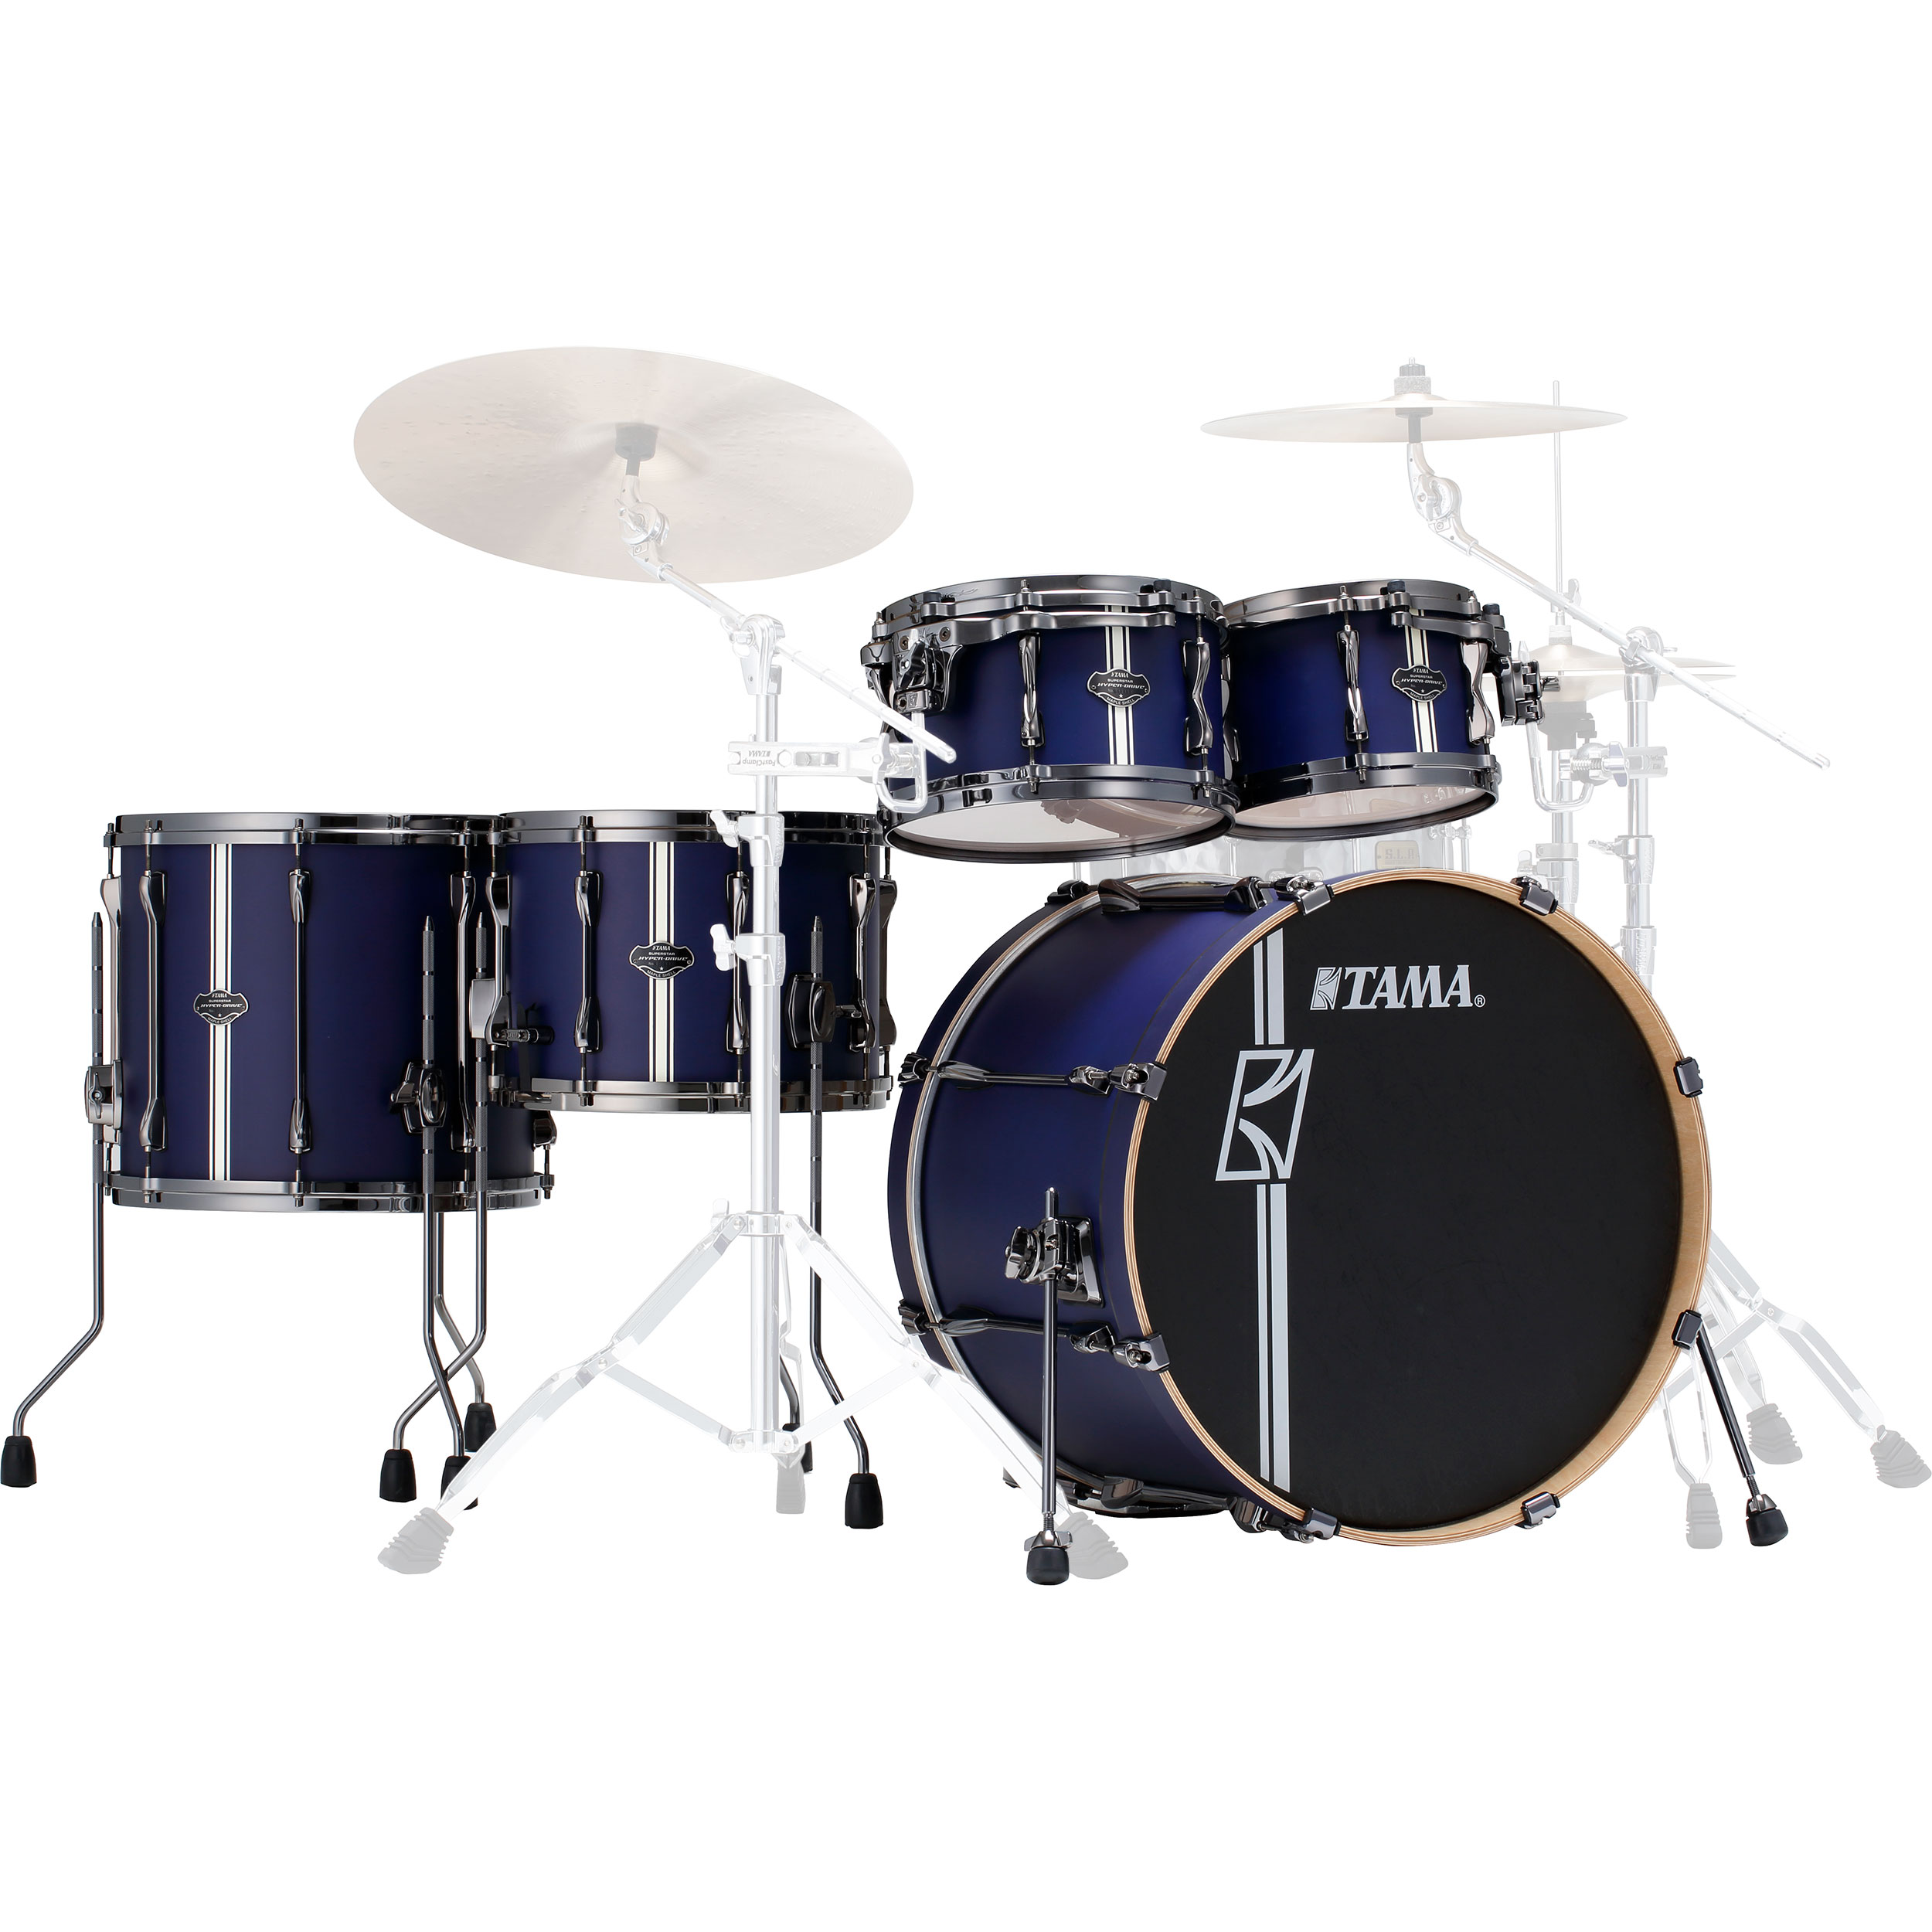 "Tama Superstar Hyper-Drive Duo 5-Piece Drum Set Shell Pack (22"" Bass, 10/12/16"" Toms, 14"" Duo Snare)"